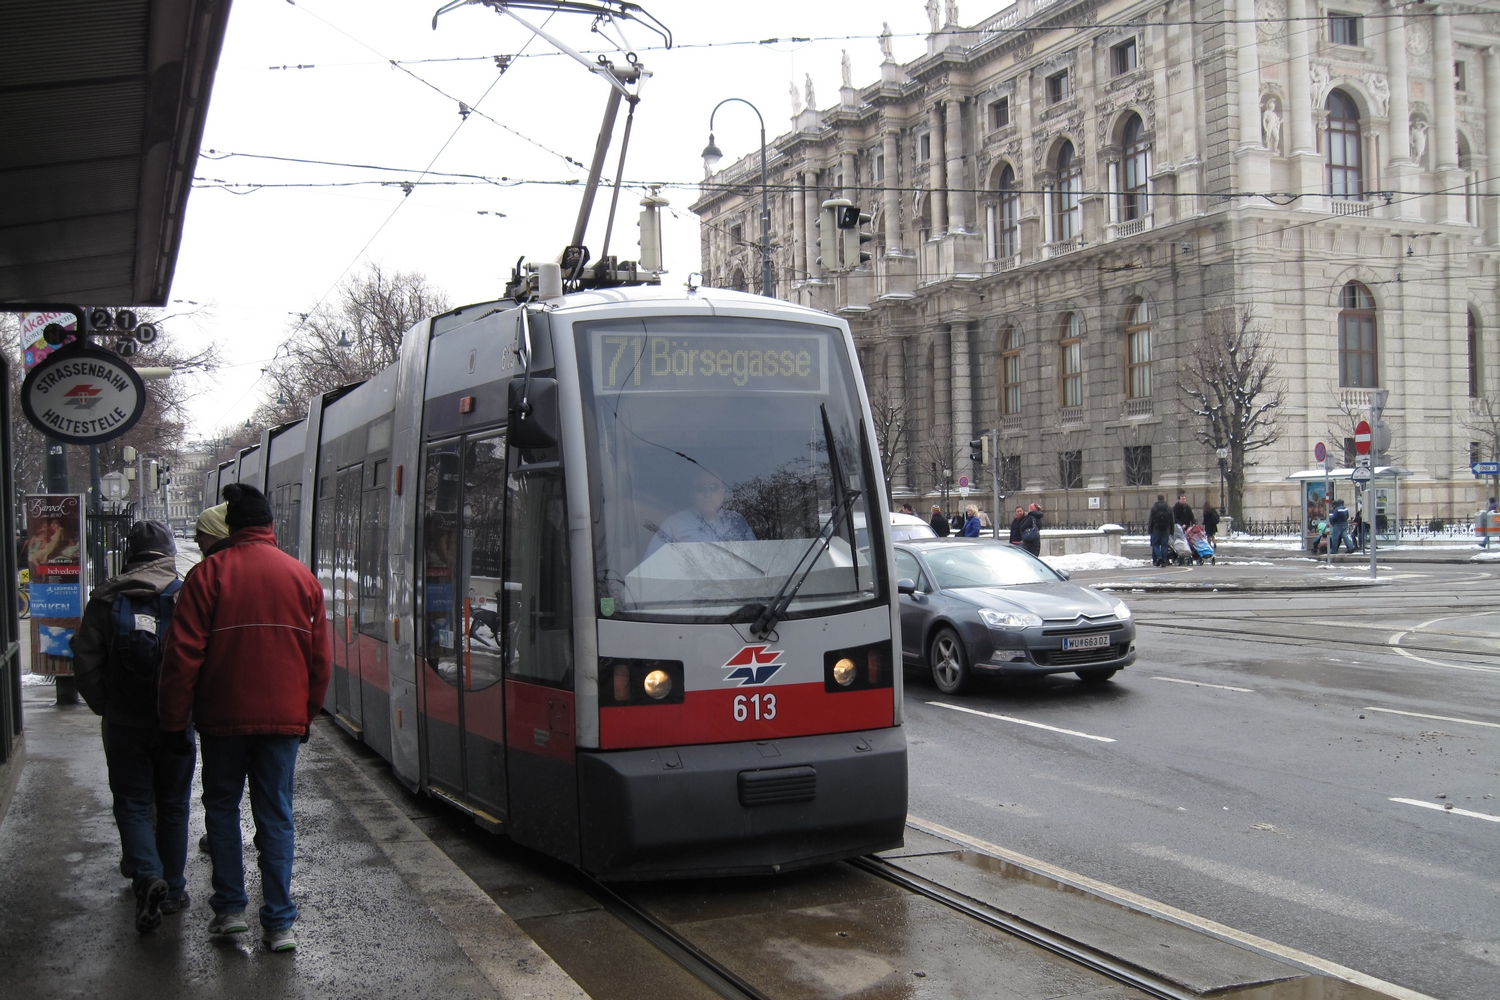 Vienna low-floor articulated tram 613 on tram line 71 at the stop Burgring (2013).